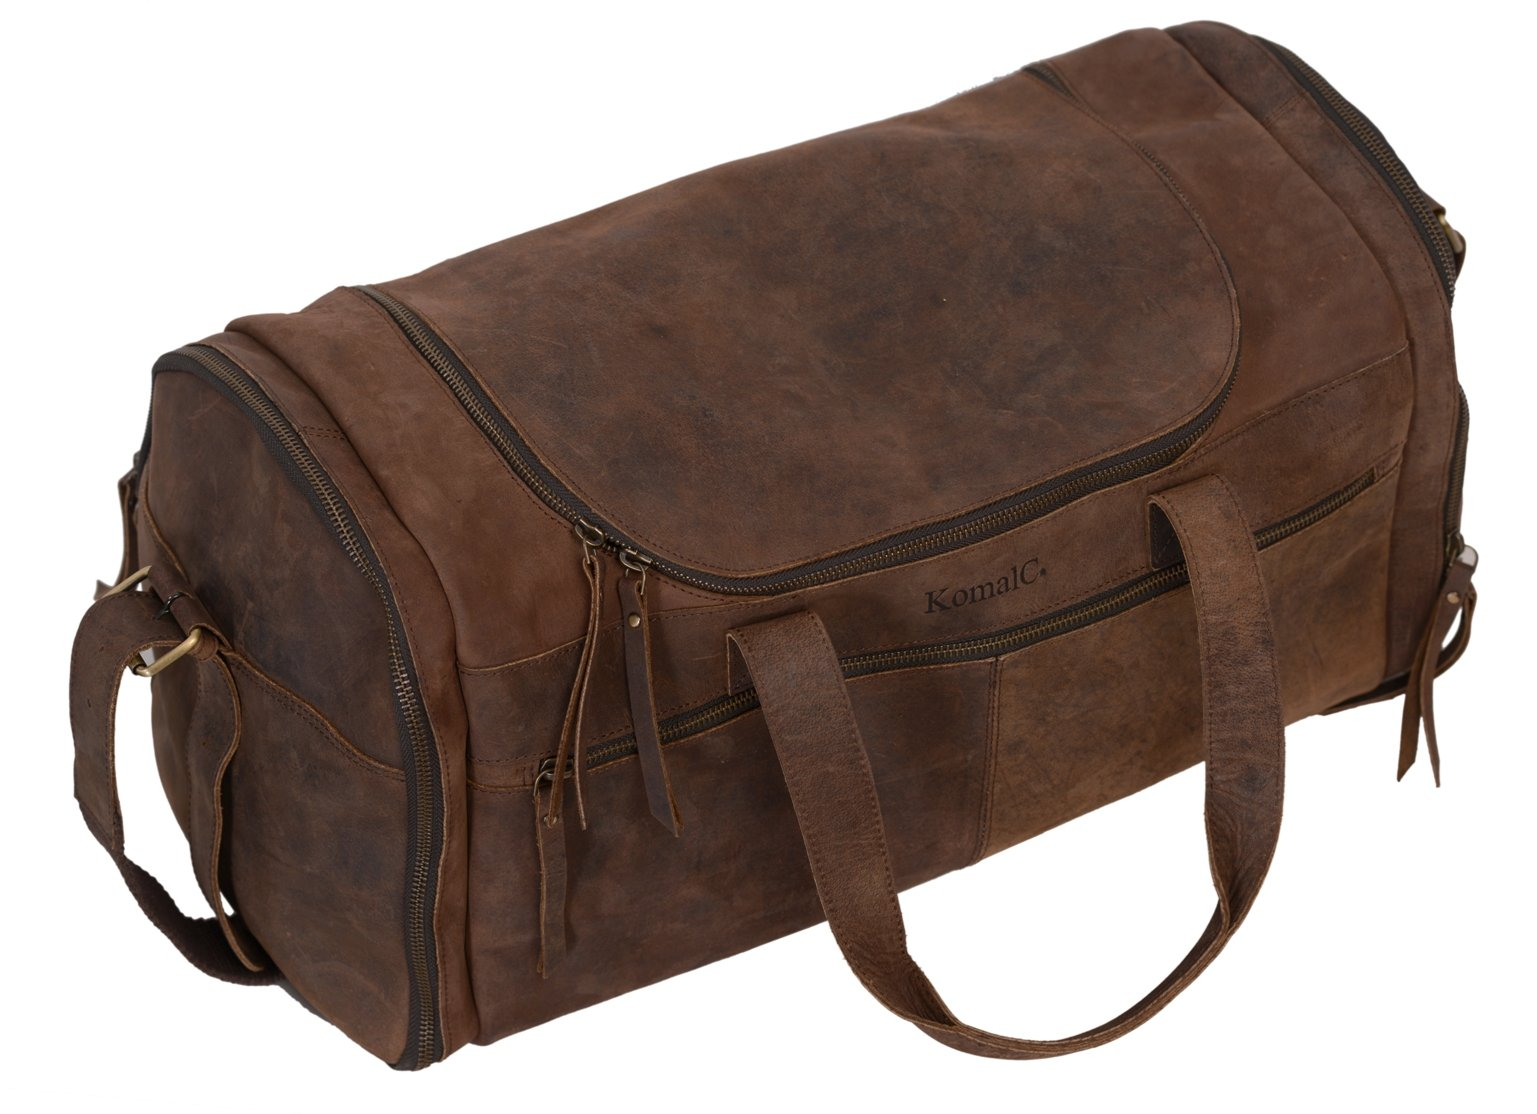 KomalC 21 inch U Zip Duffel holdall Travel Sports Overnight Weekend Leather Bag for Gym Sports Cabin by KomalC (Image #2)